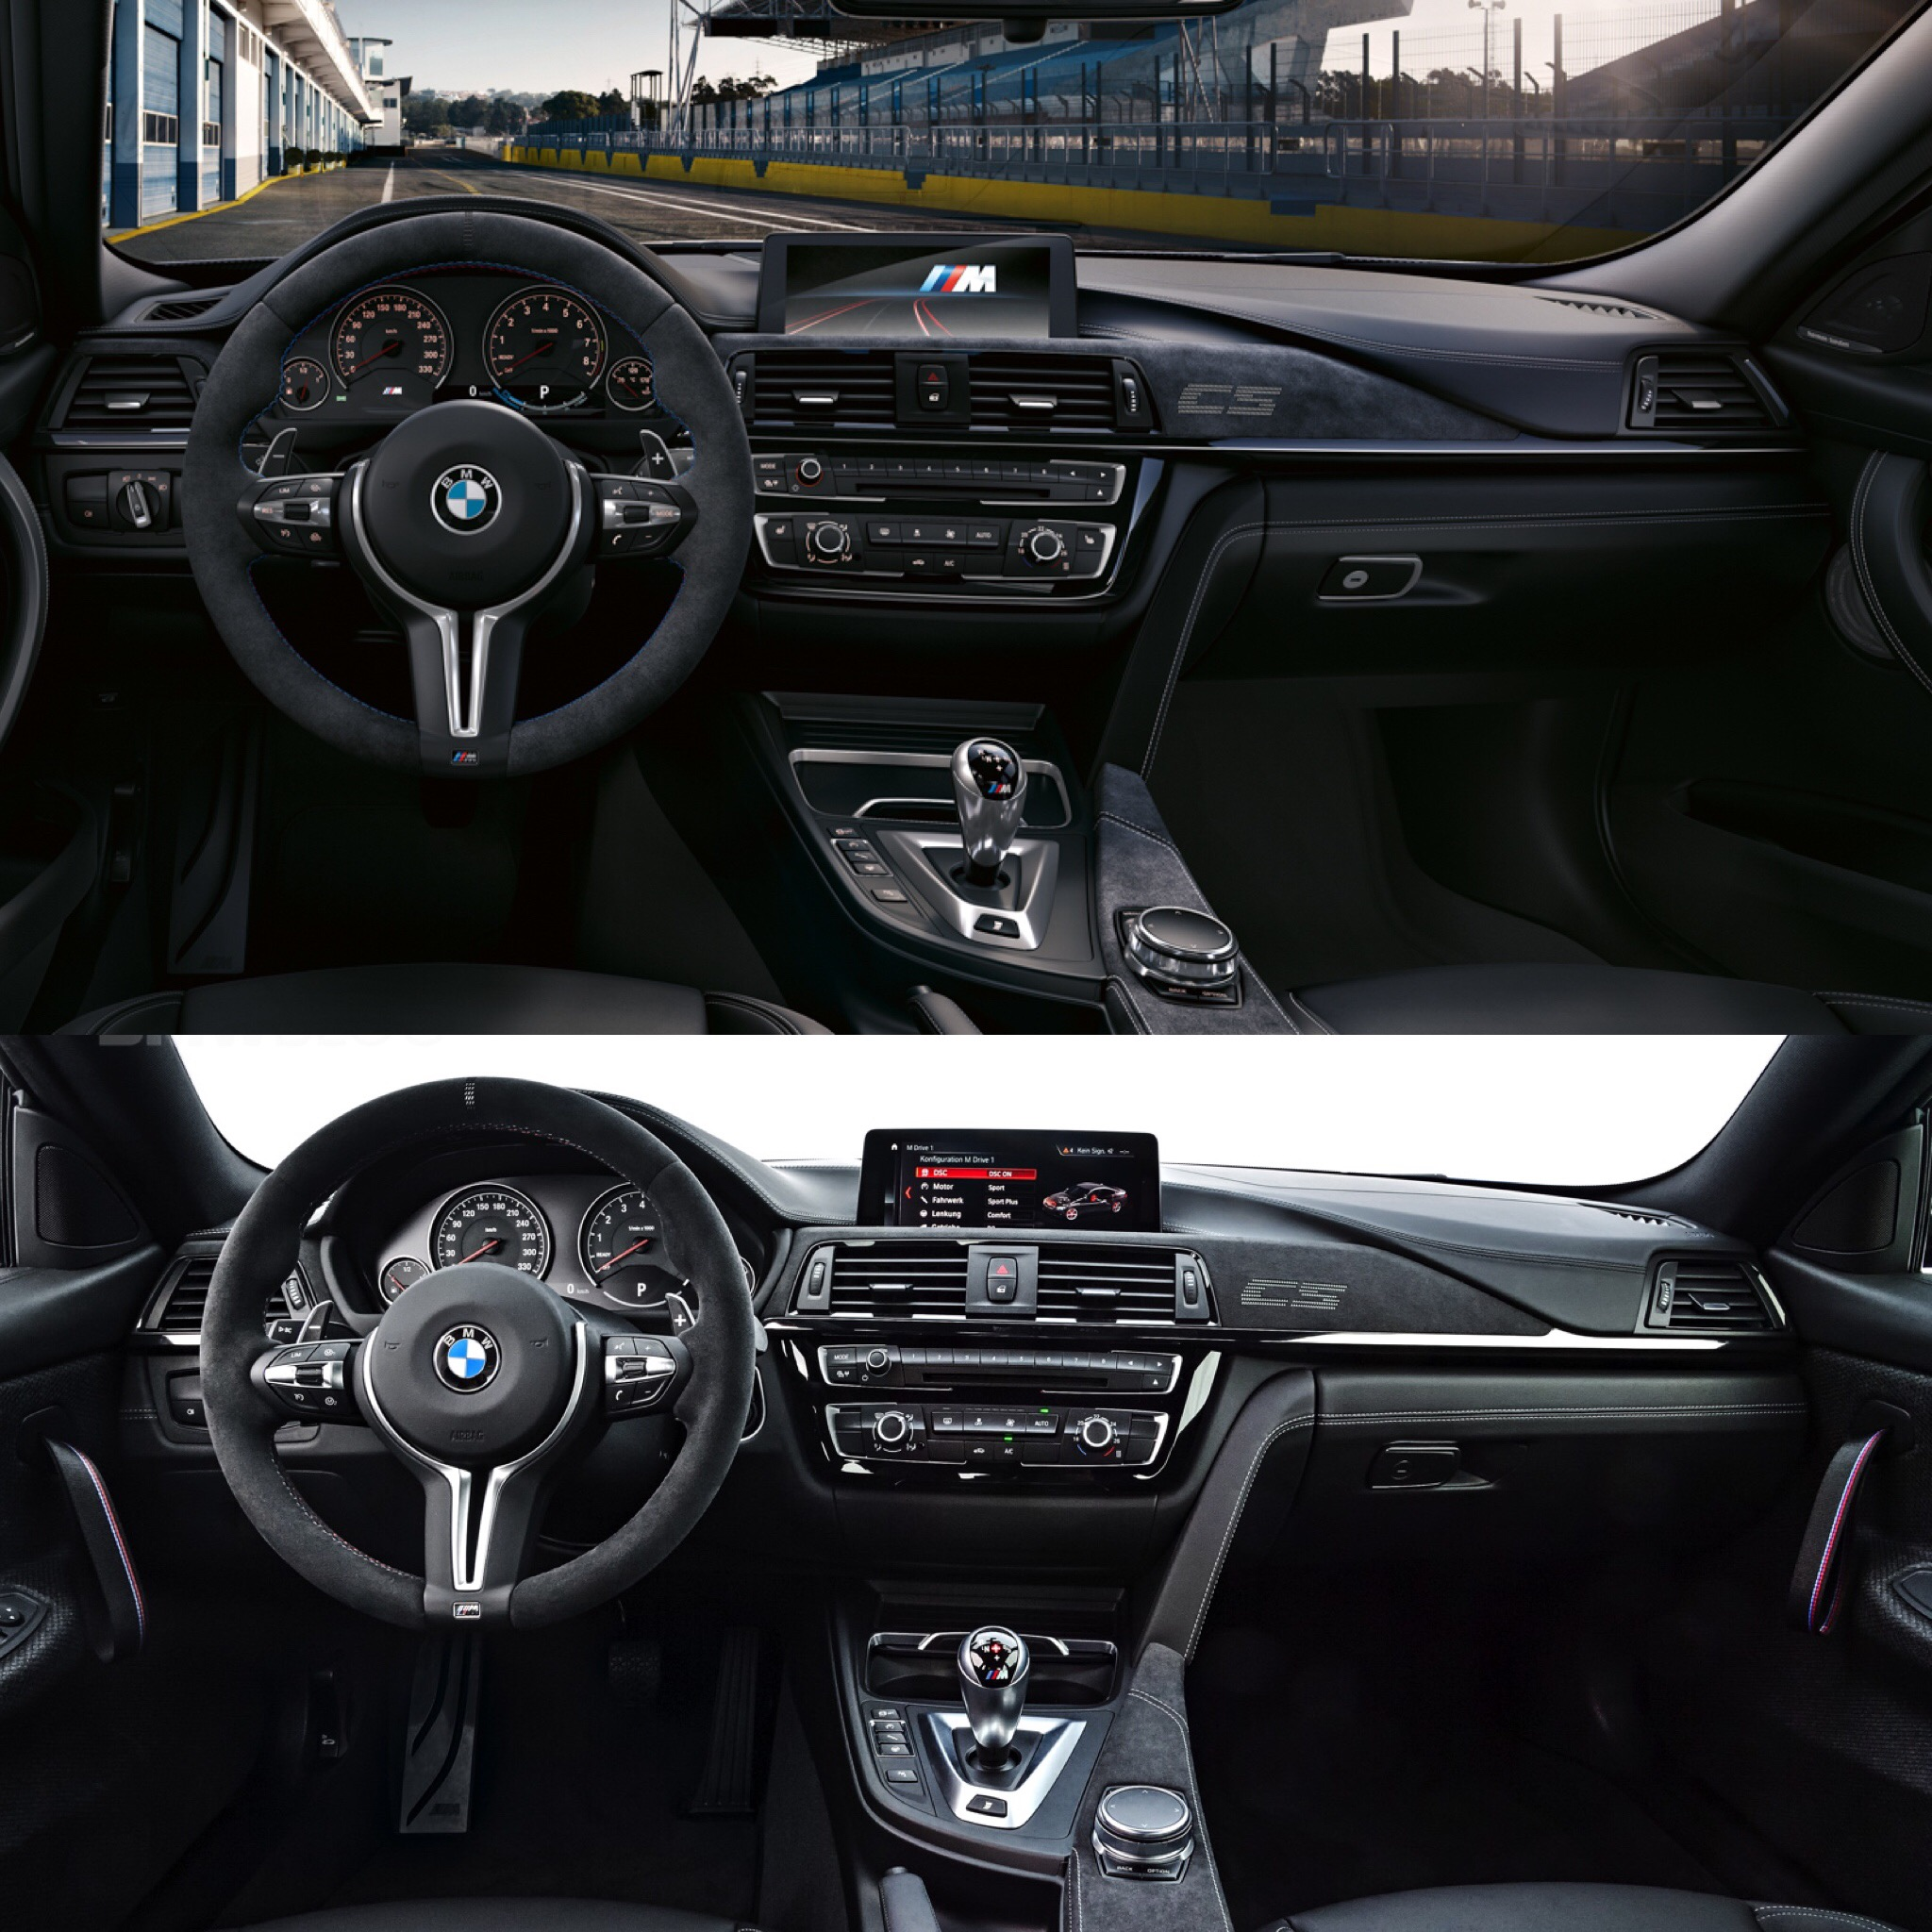 Bmw M3 Cs: Photo Comparison: BMW M3 CS Vs BMW M4 CS